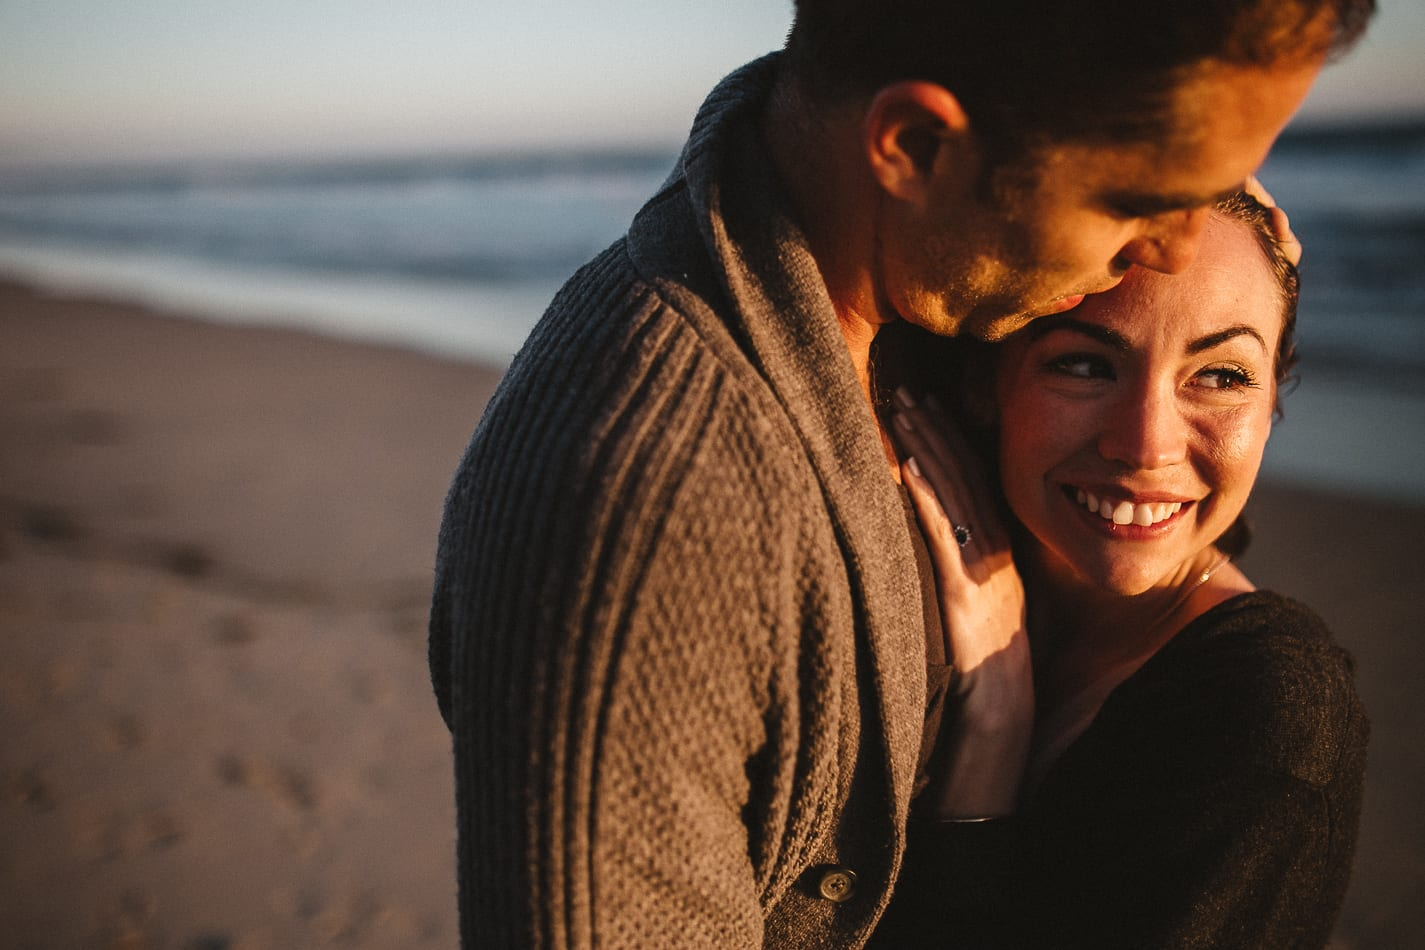 jason-alyssa-huntington-beach-california-engagement-photographer-7